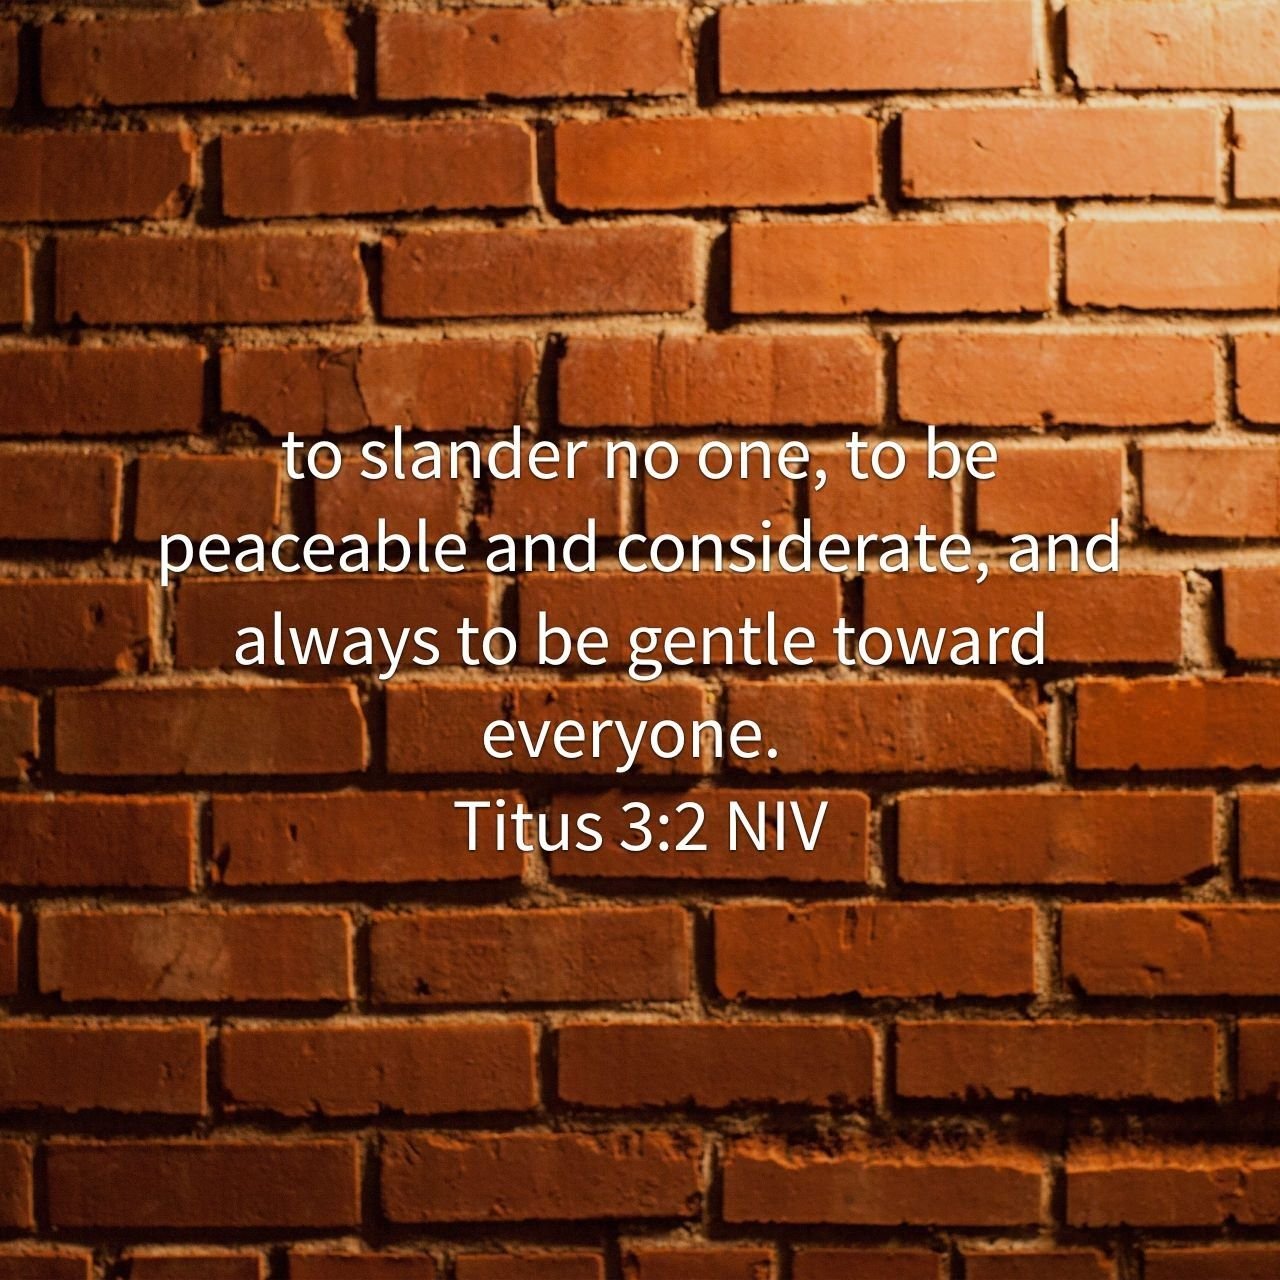 Pin by Dug Abear on Verses Bible apps, Proverbs, Psalms